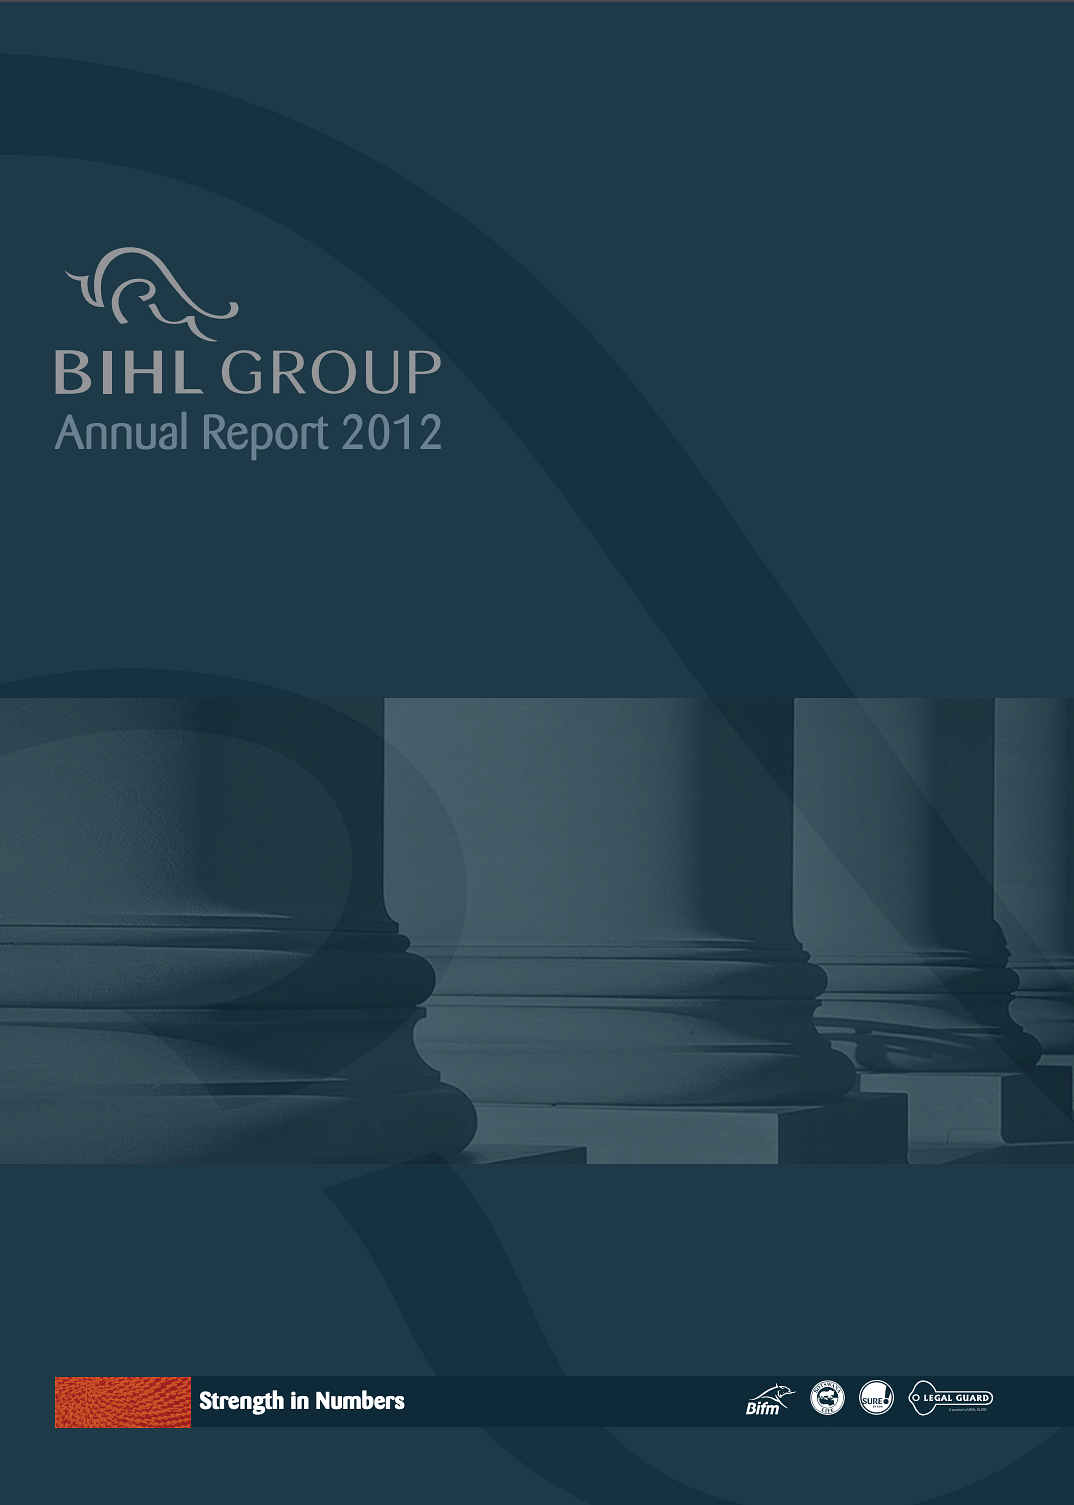 The BIHL Group Annual Report 2012 cover